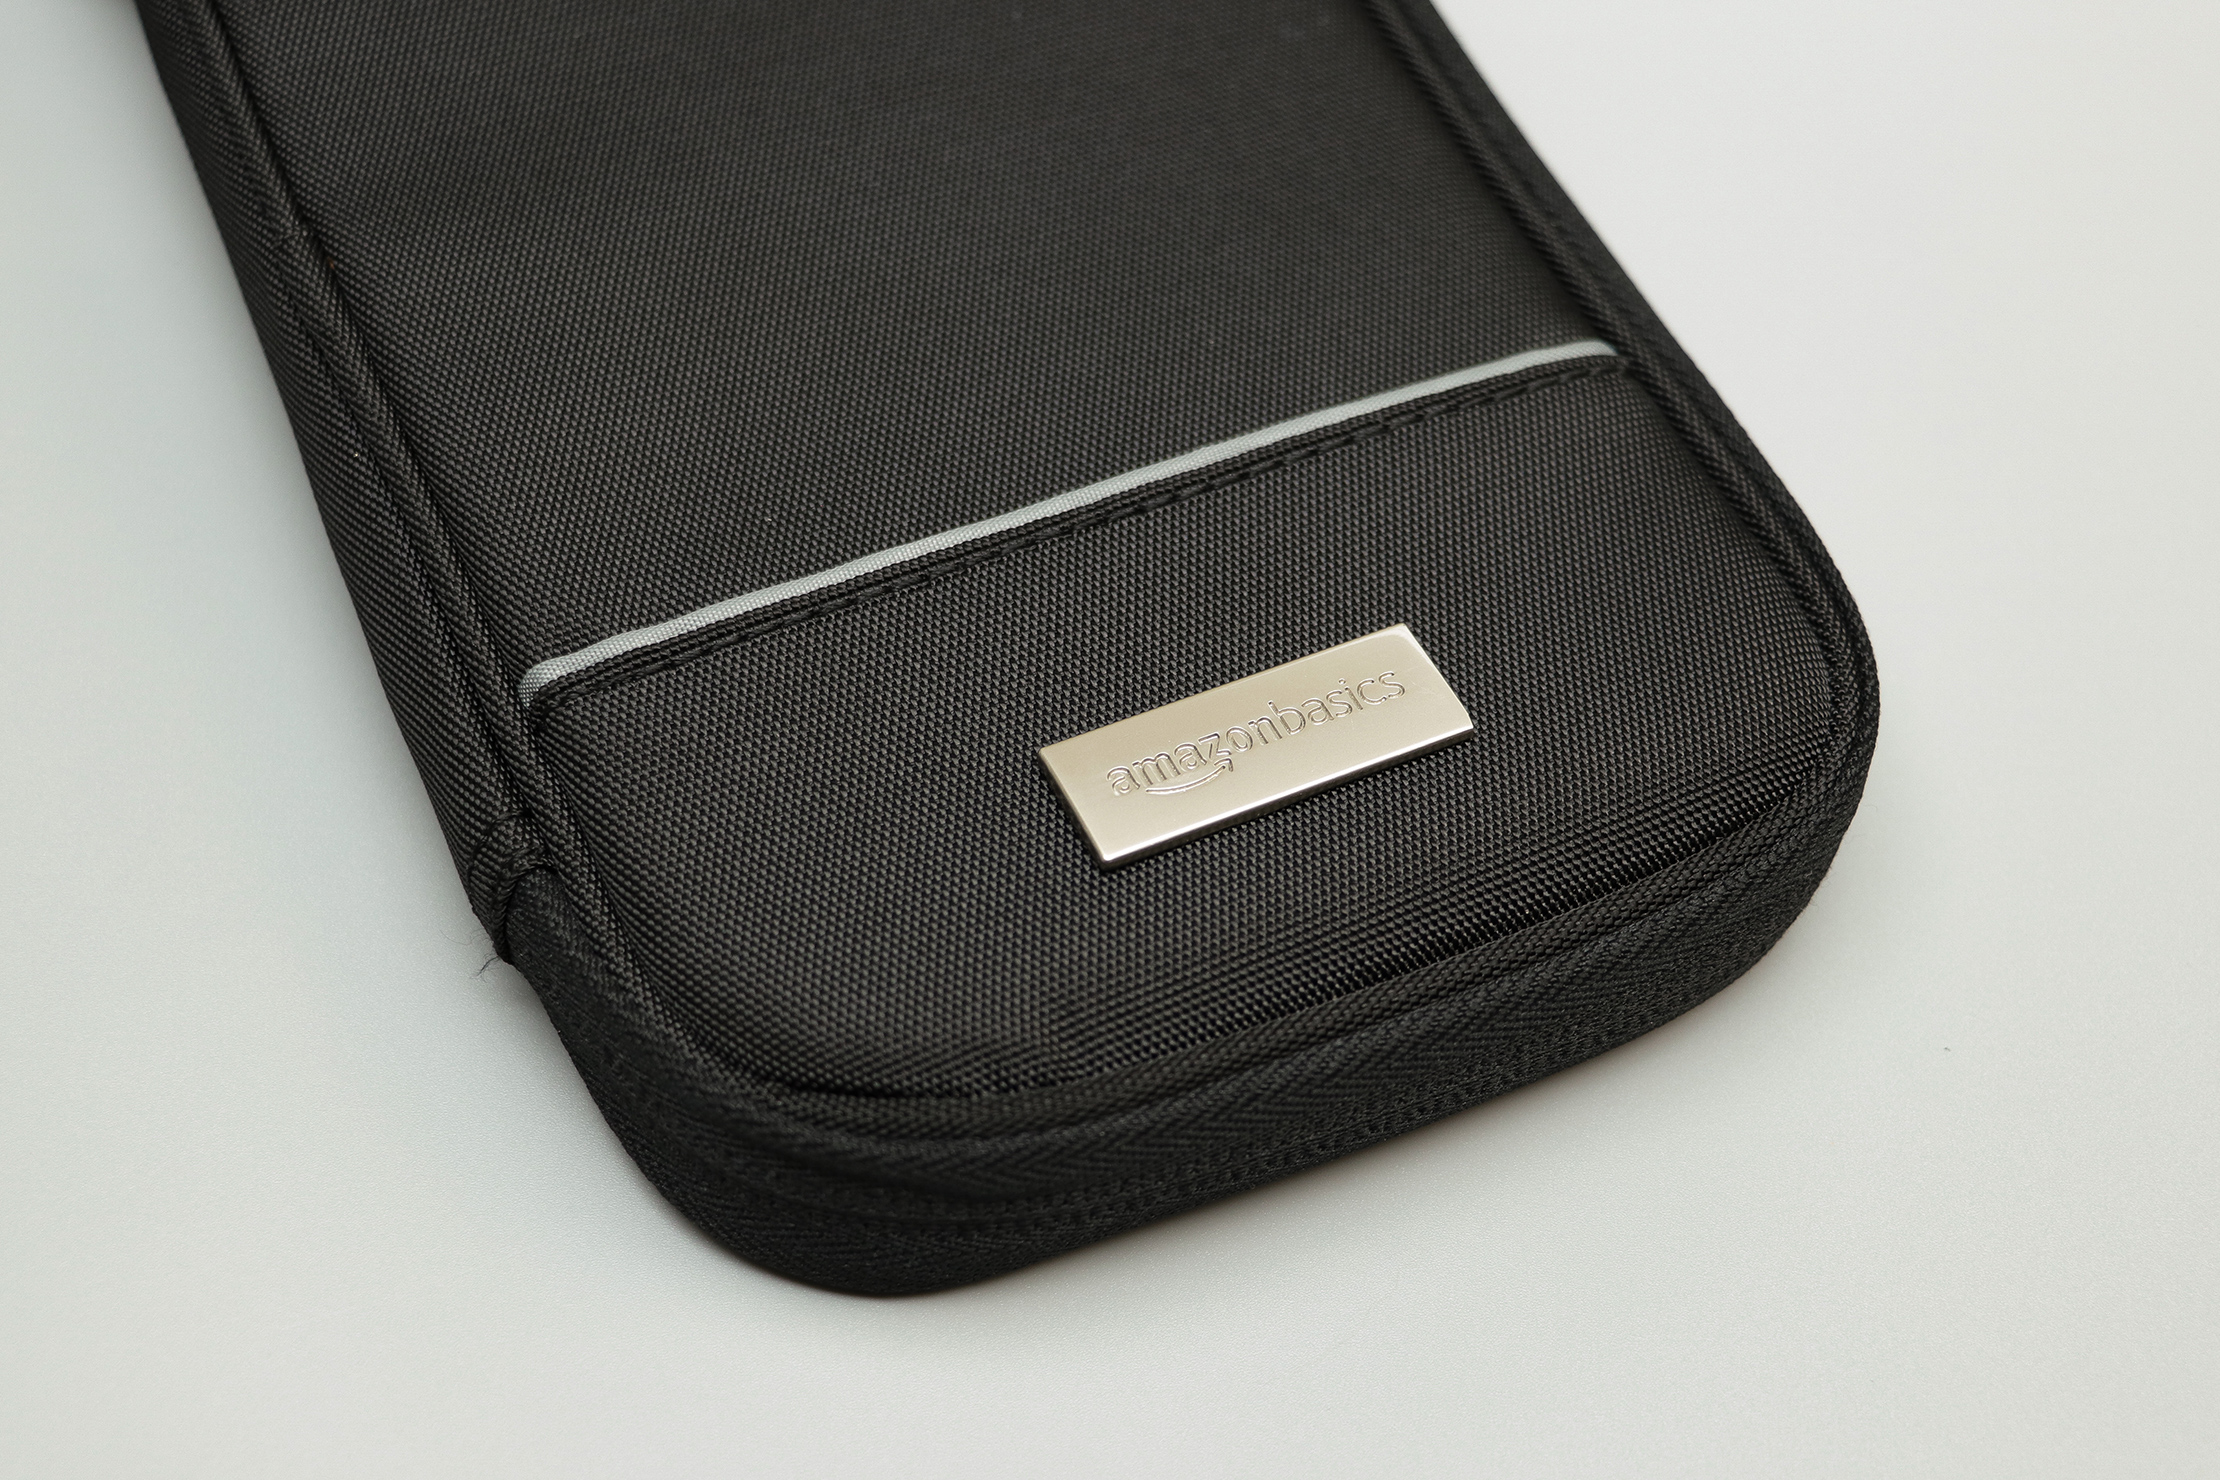 AmazonBasics RFID Travel Passport Wallet Logo And Material